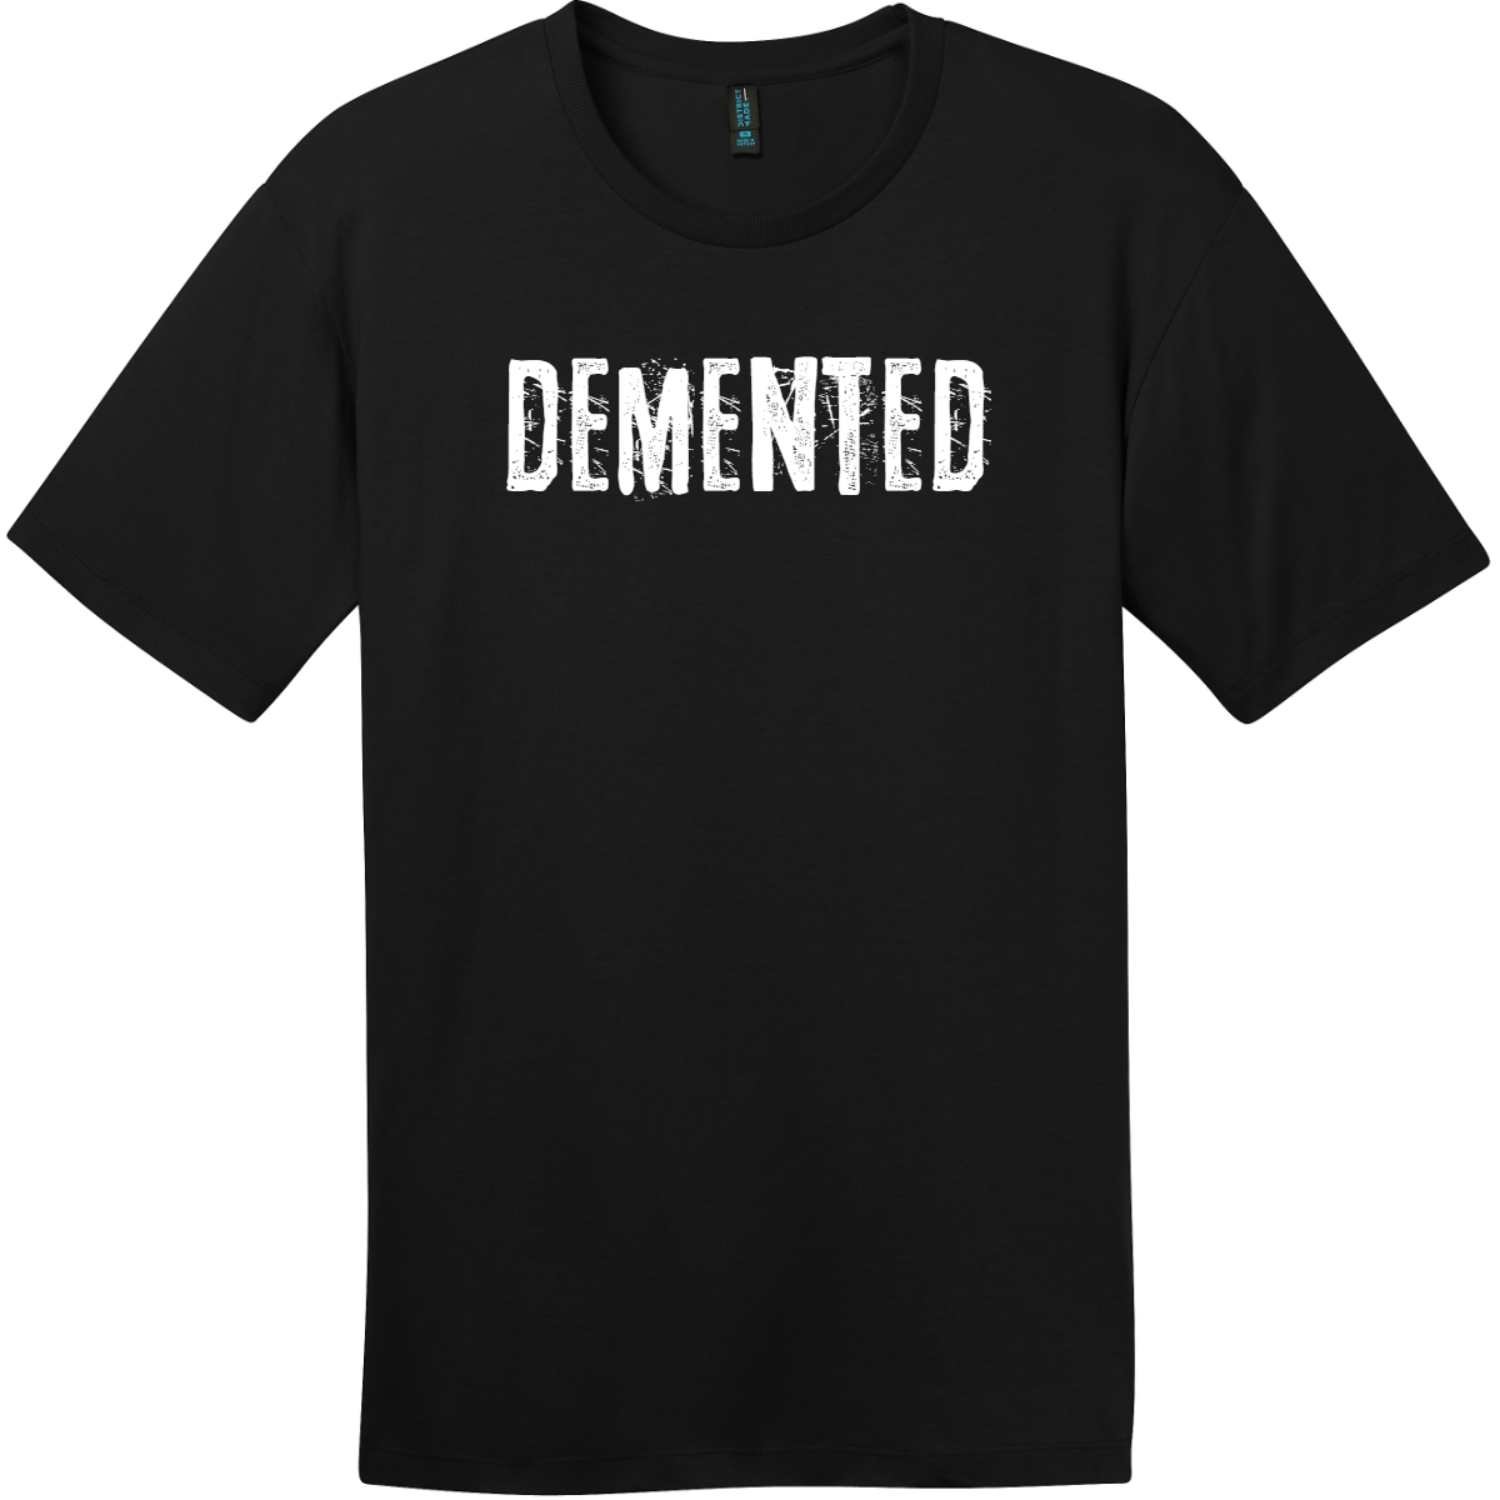 Demented T-Shirt Jet Black District Perfect Weight Tee DT104